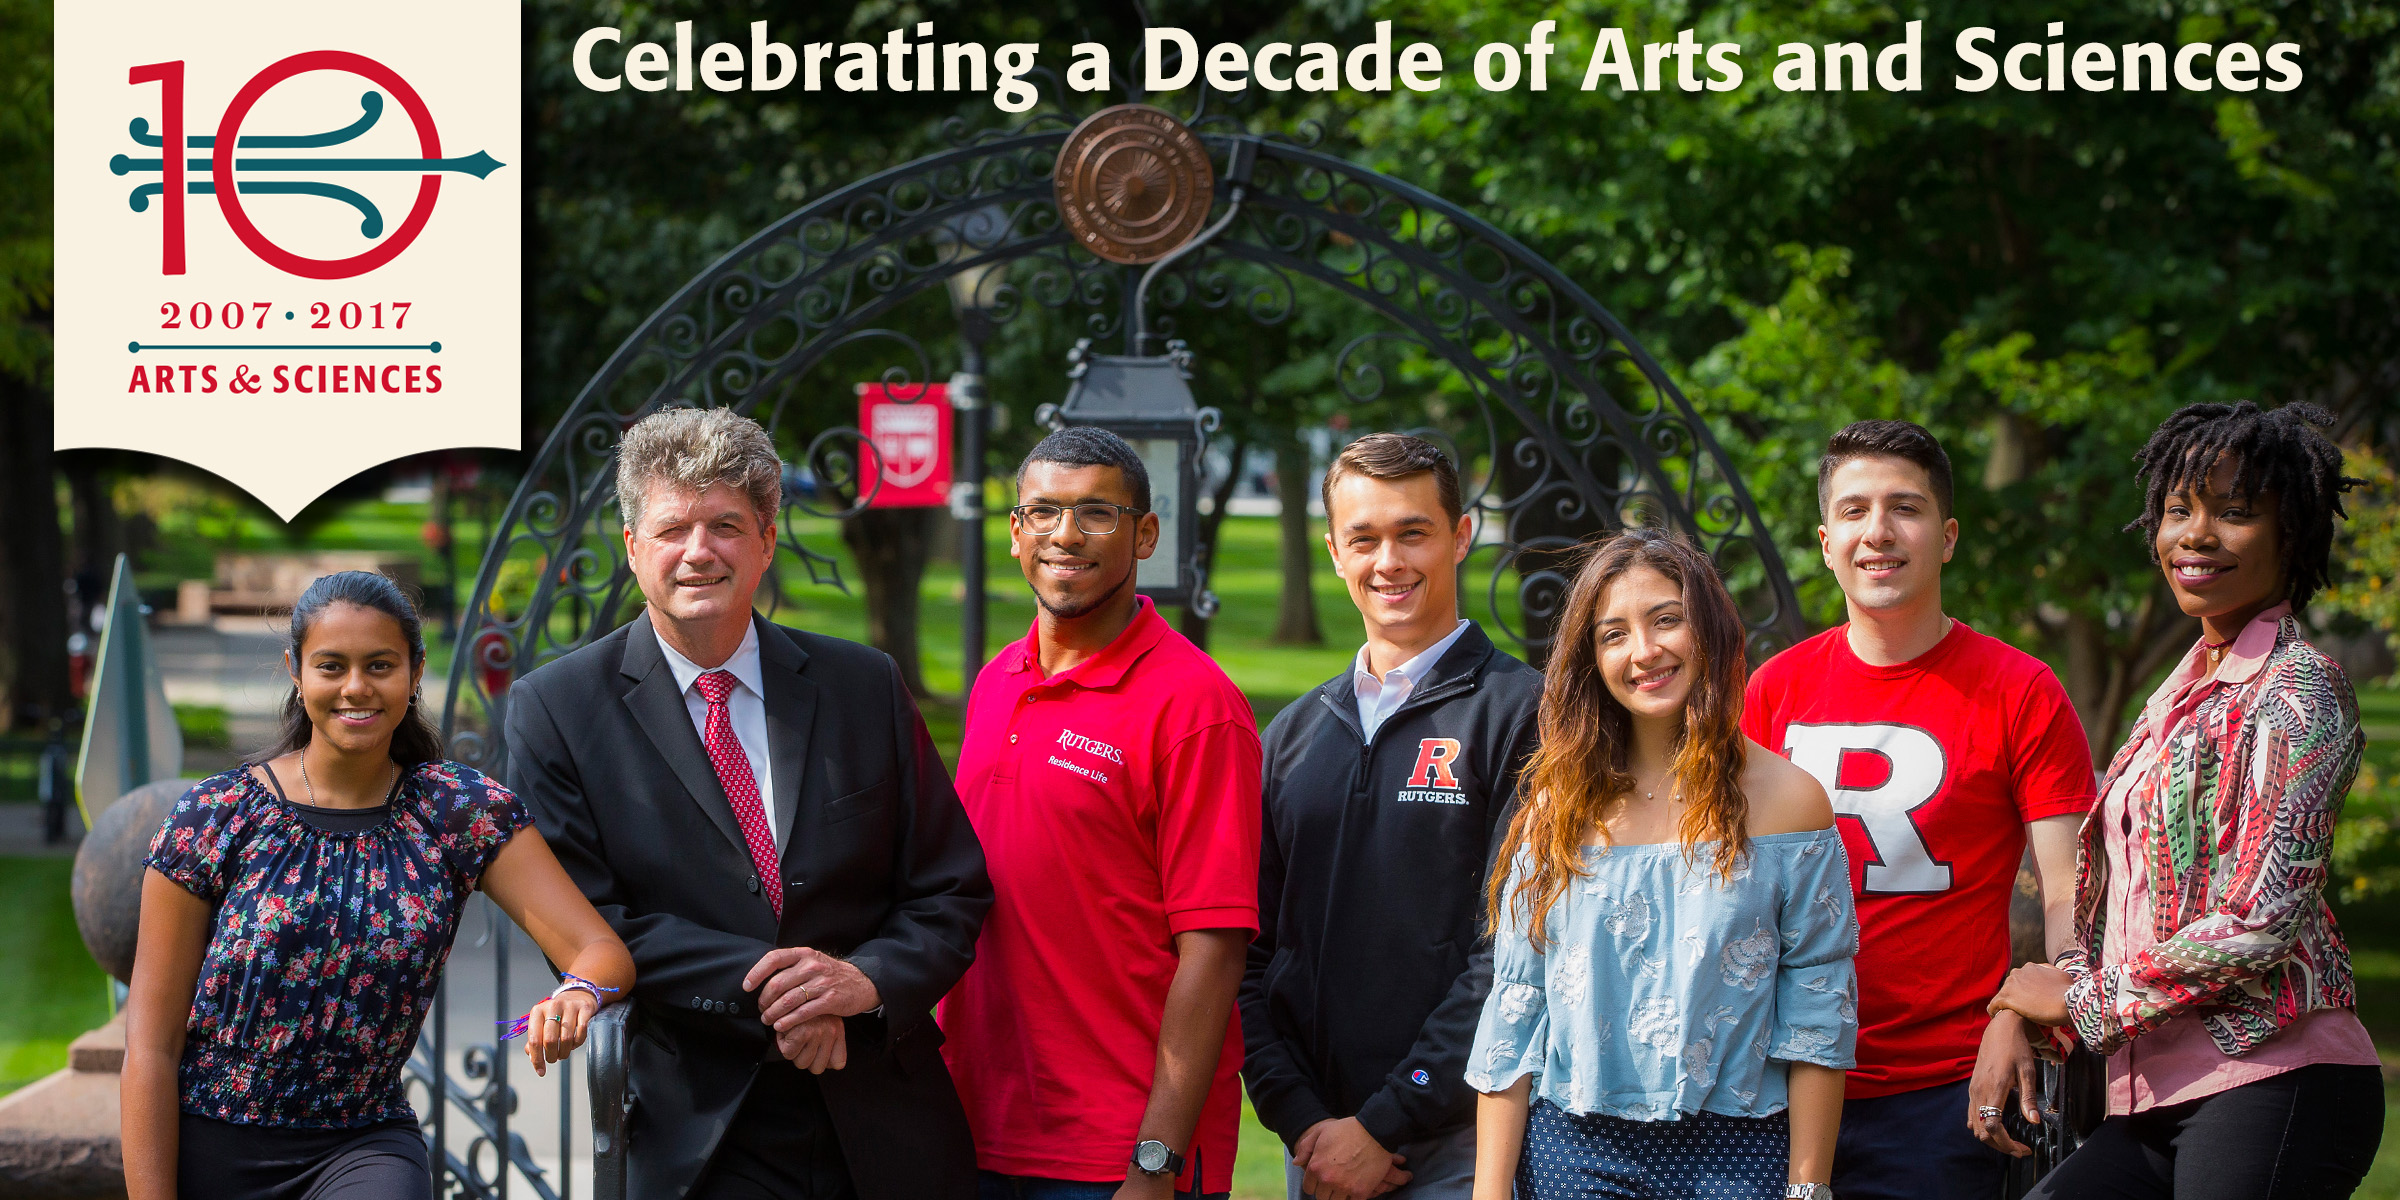 Celebrating a Decade of Arts and Sciences